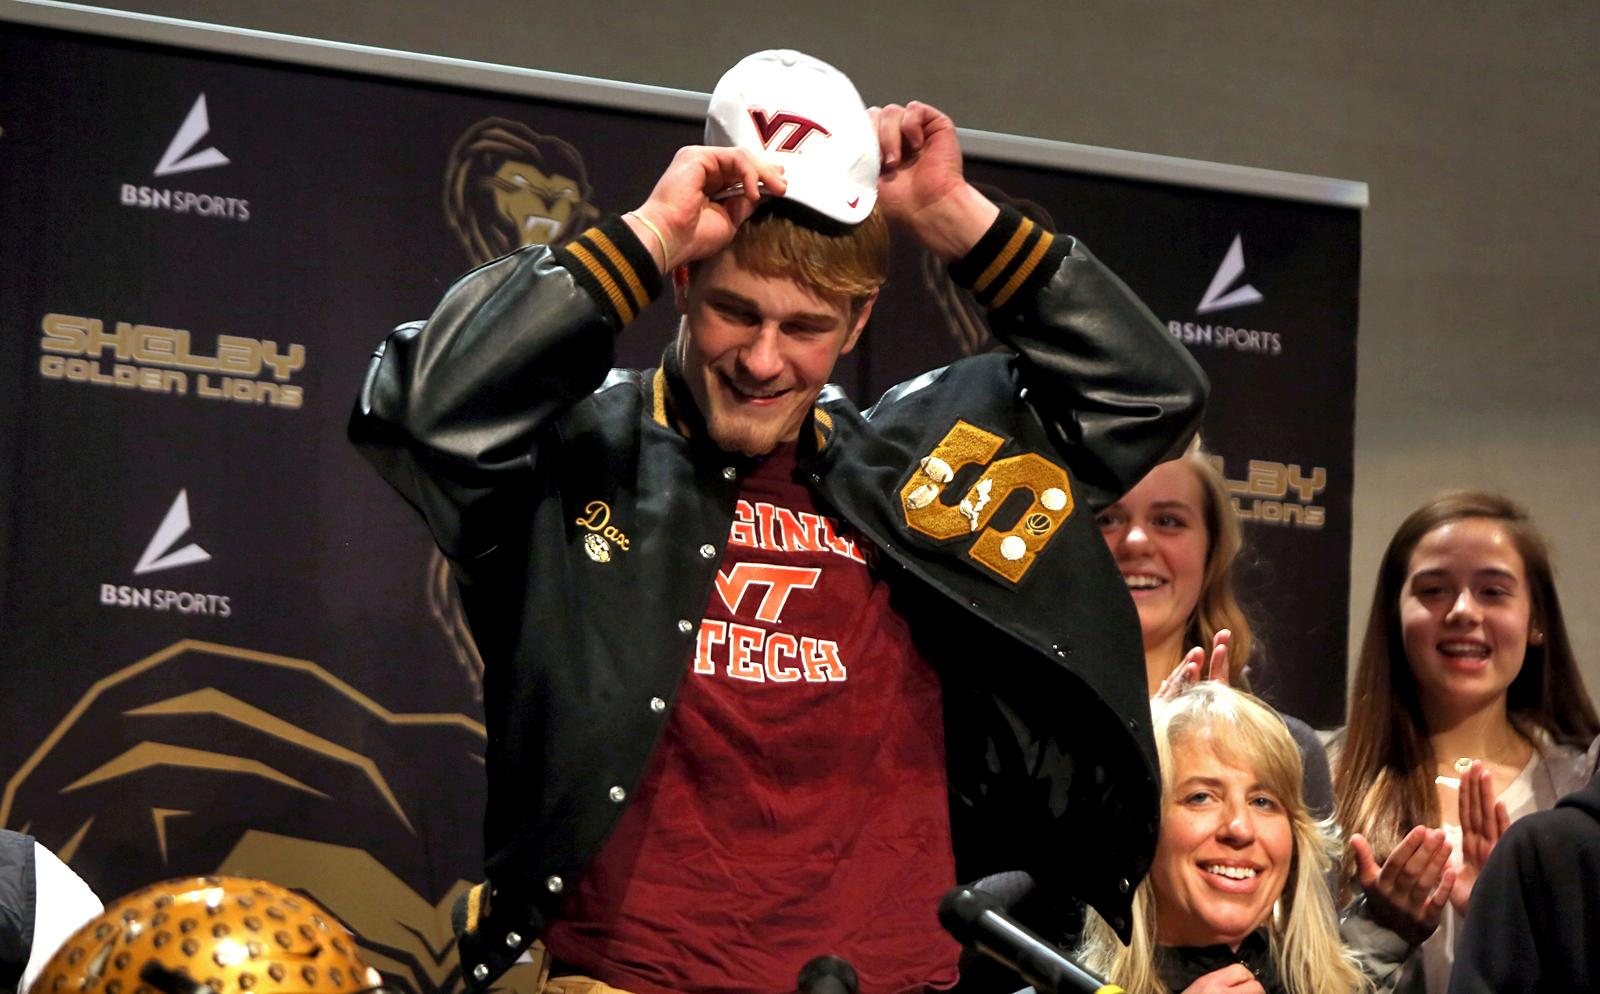 Shelby High School football player Dax Hollifield dons a Virginia Tech cap as he reveals his college decision during a signing day event at Shelby High School in Shelby, N.C. Wednesday, Feb. 7, 2018. (Brittany Randolph/The Star via AP)/The Star via AP)